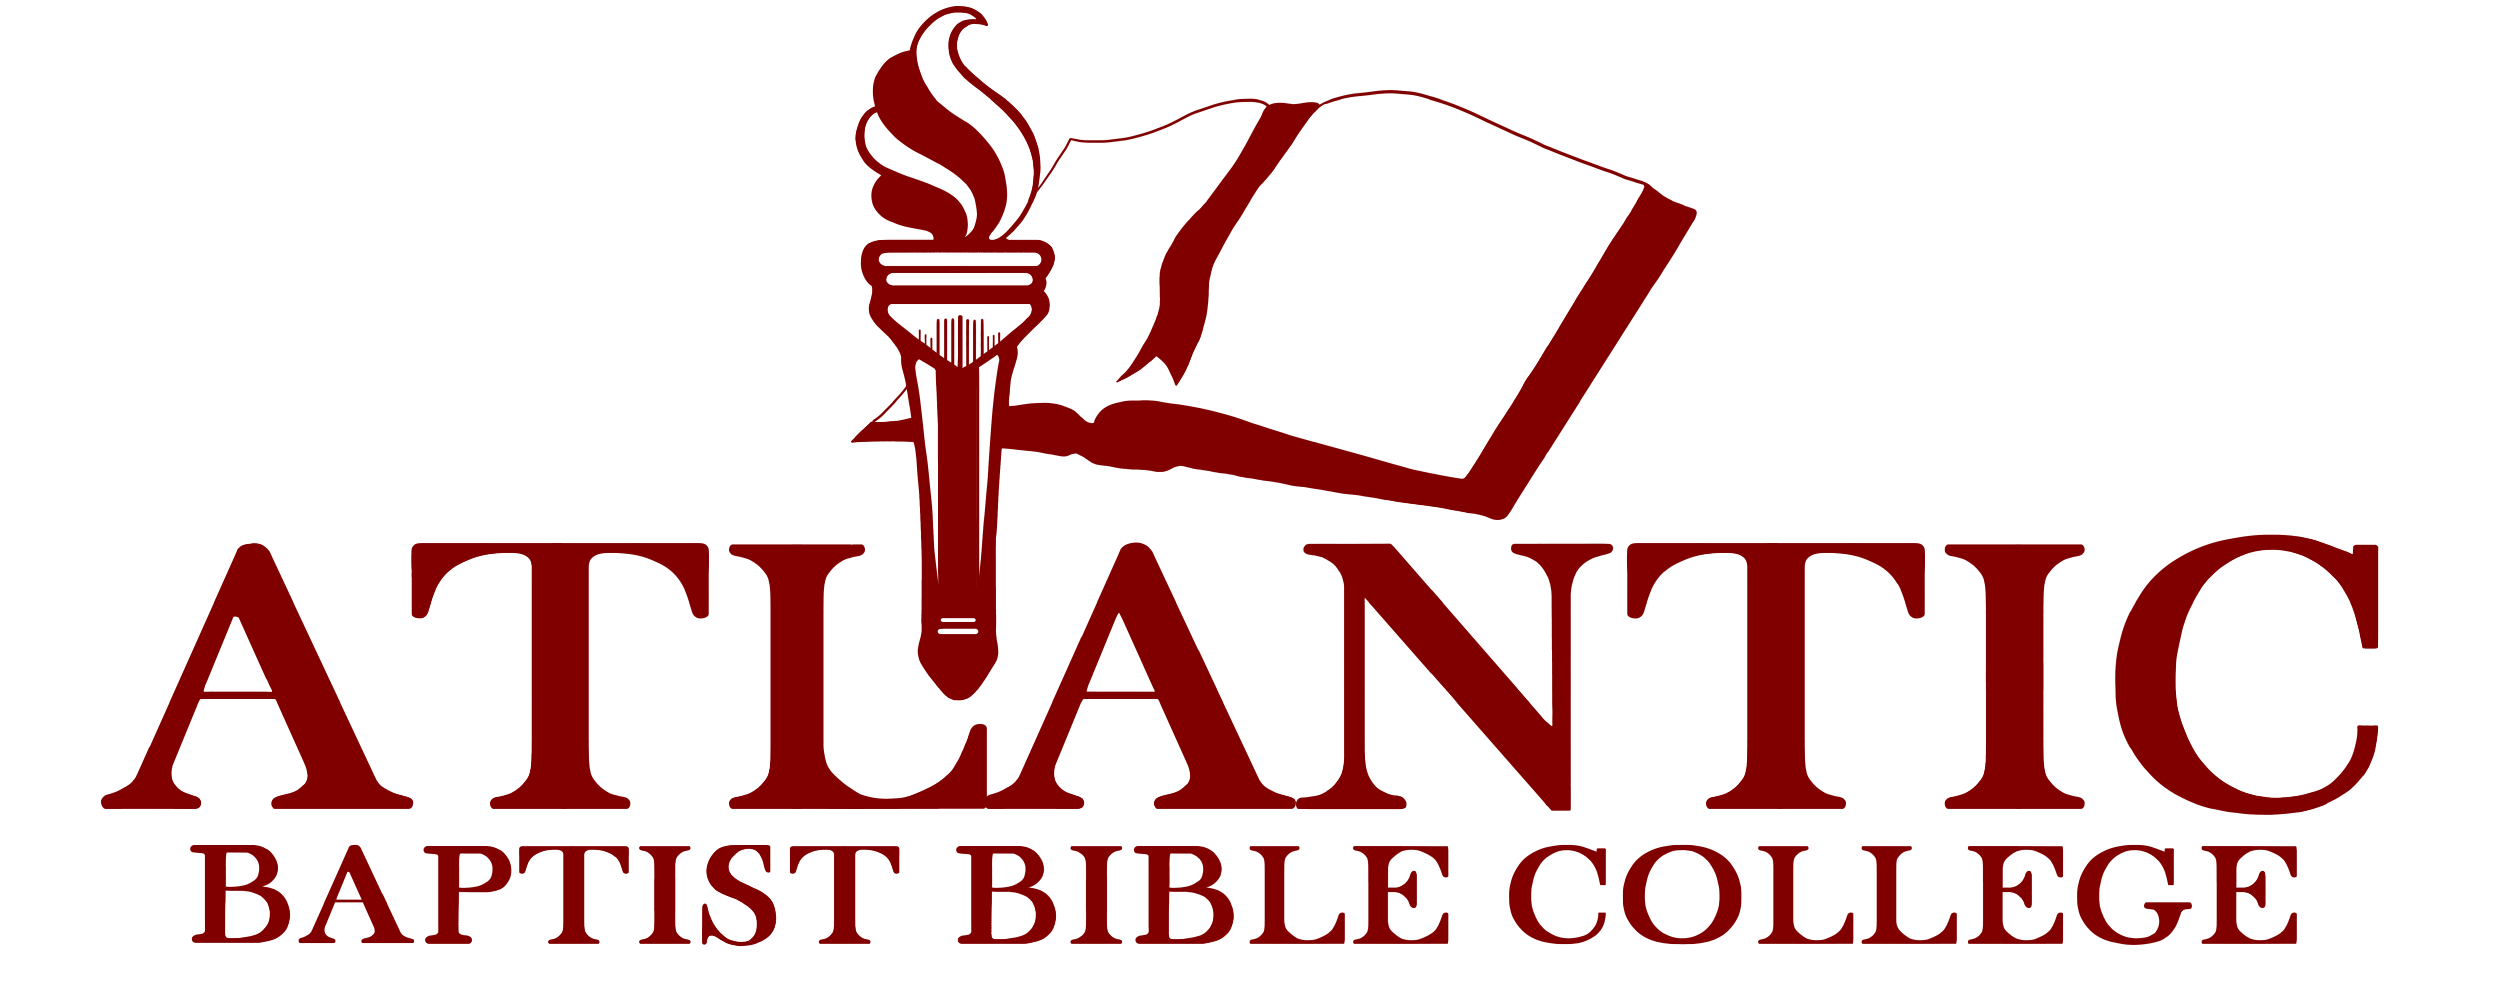 Atlantic Baptist Bible College